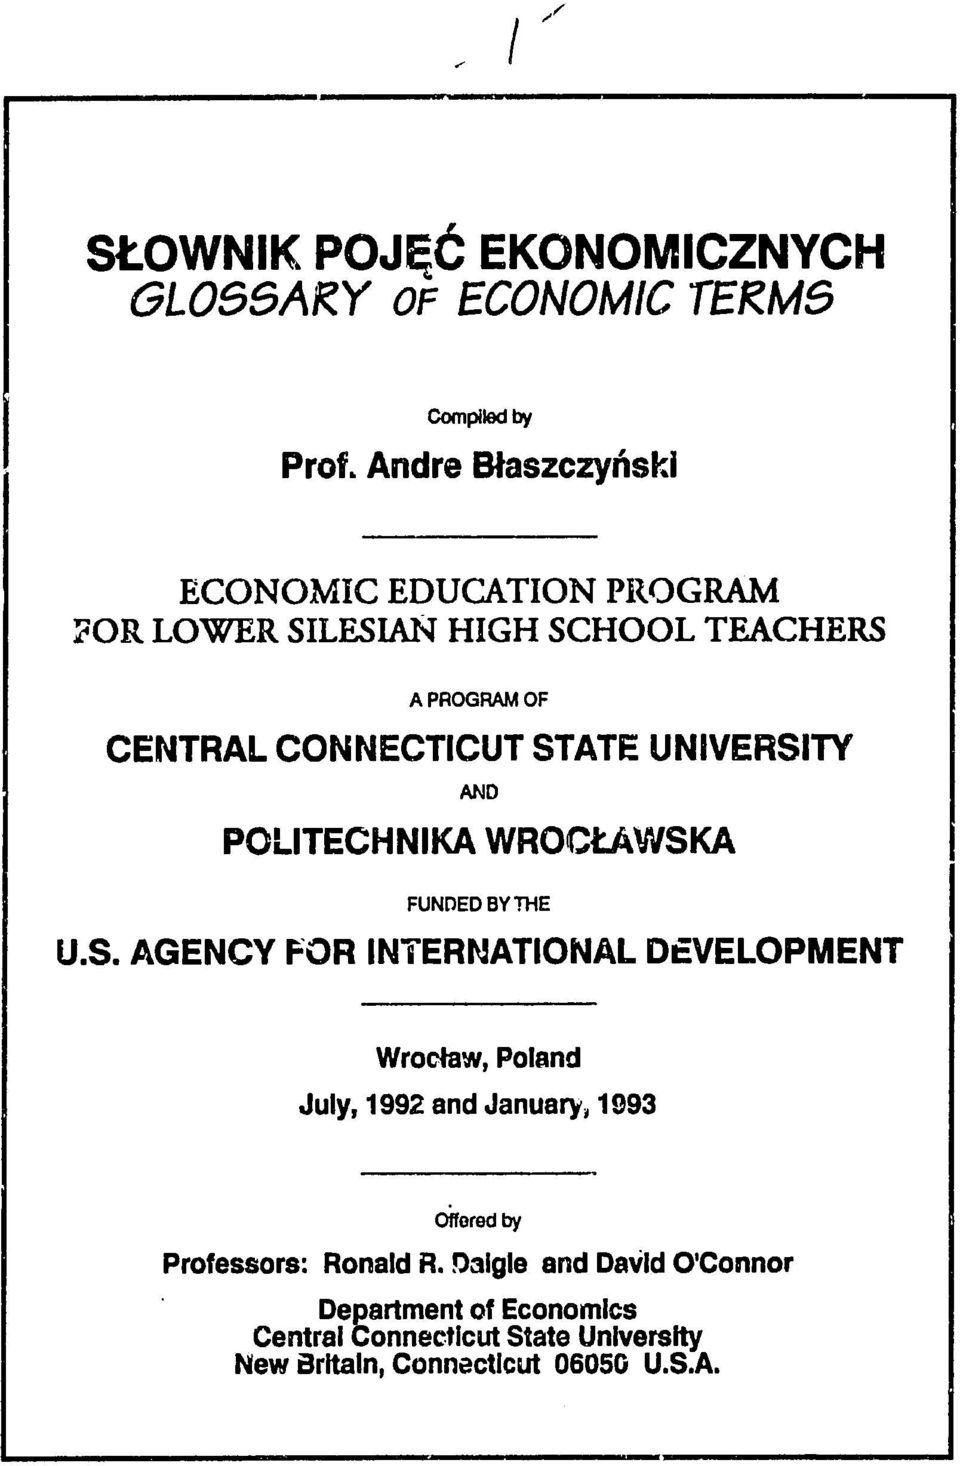 STATE UNIVERSITY AND POLITECHNIKA WROCtAWSKA FUNDED BY THE U.S. AGENCY FOR INTERNATIONAL DE=VELOPMENT Wroclaw, Poland July, 1992 and January, 1993 Offered by Professors: Ronald R.